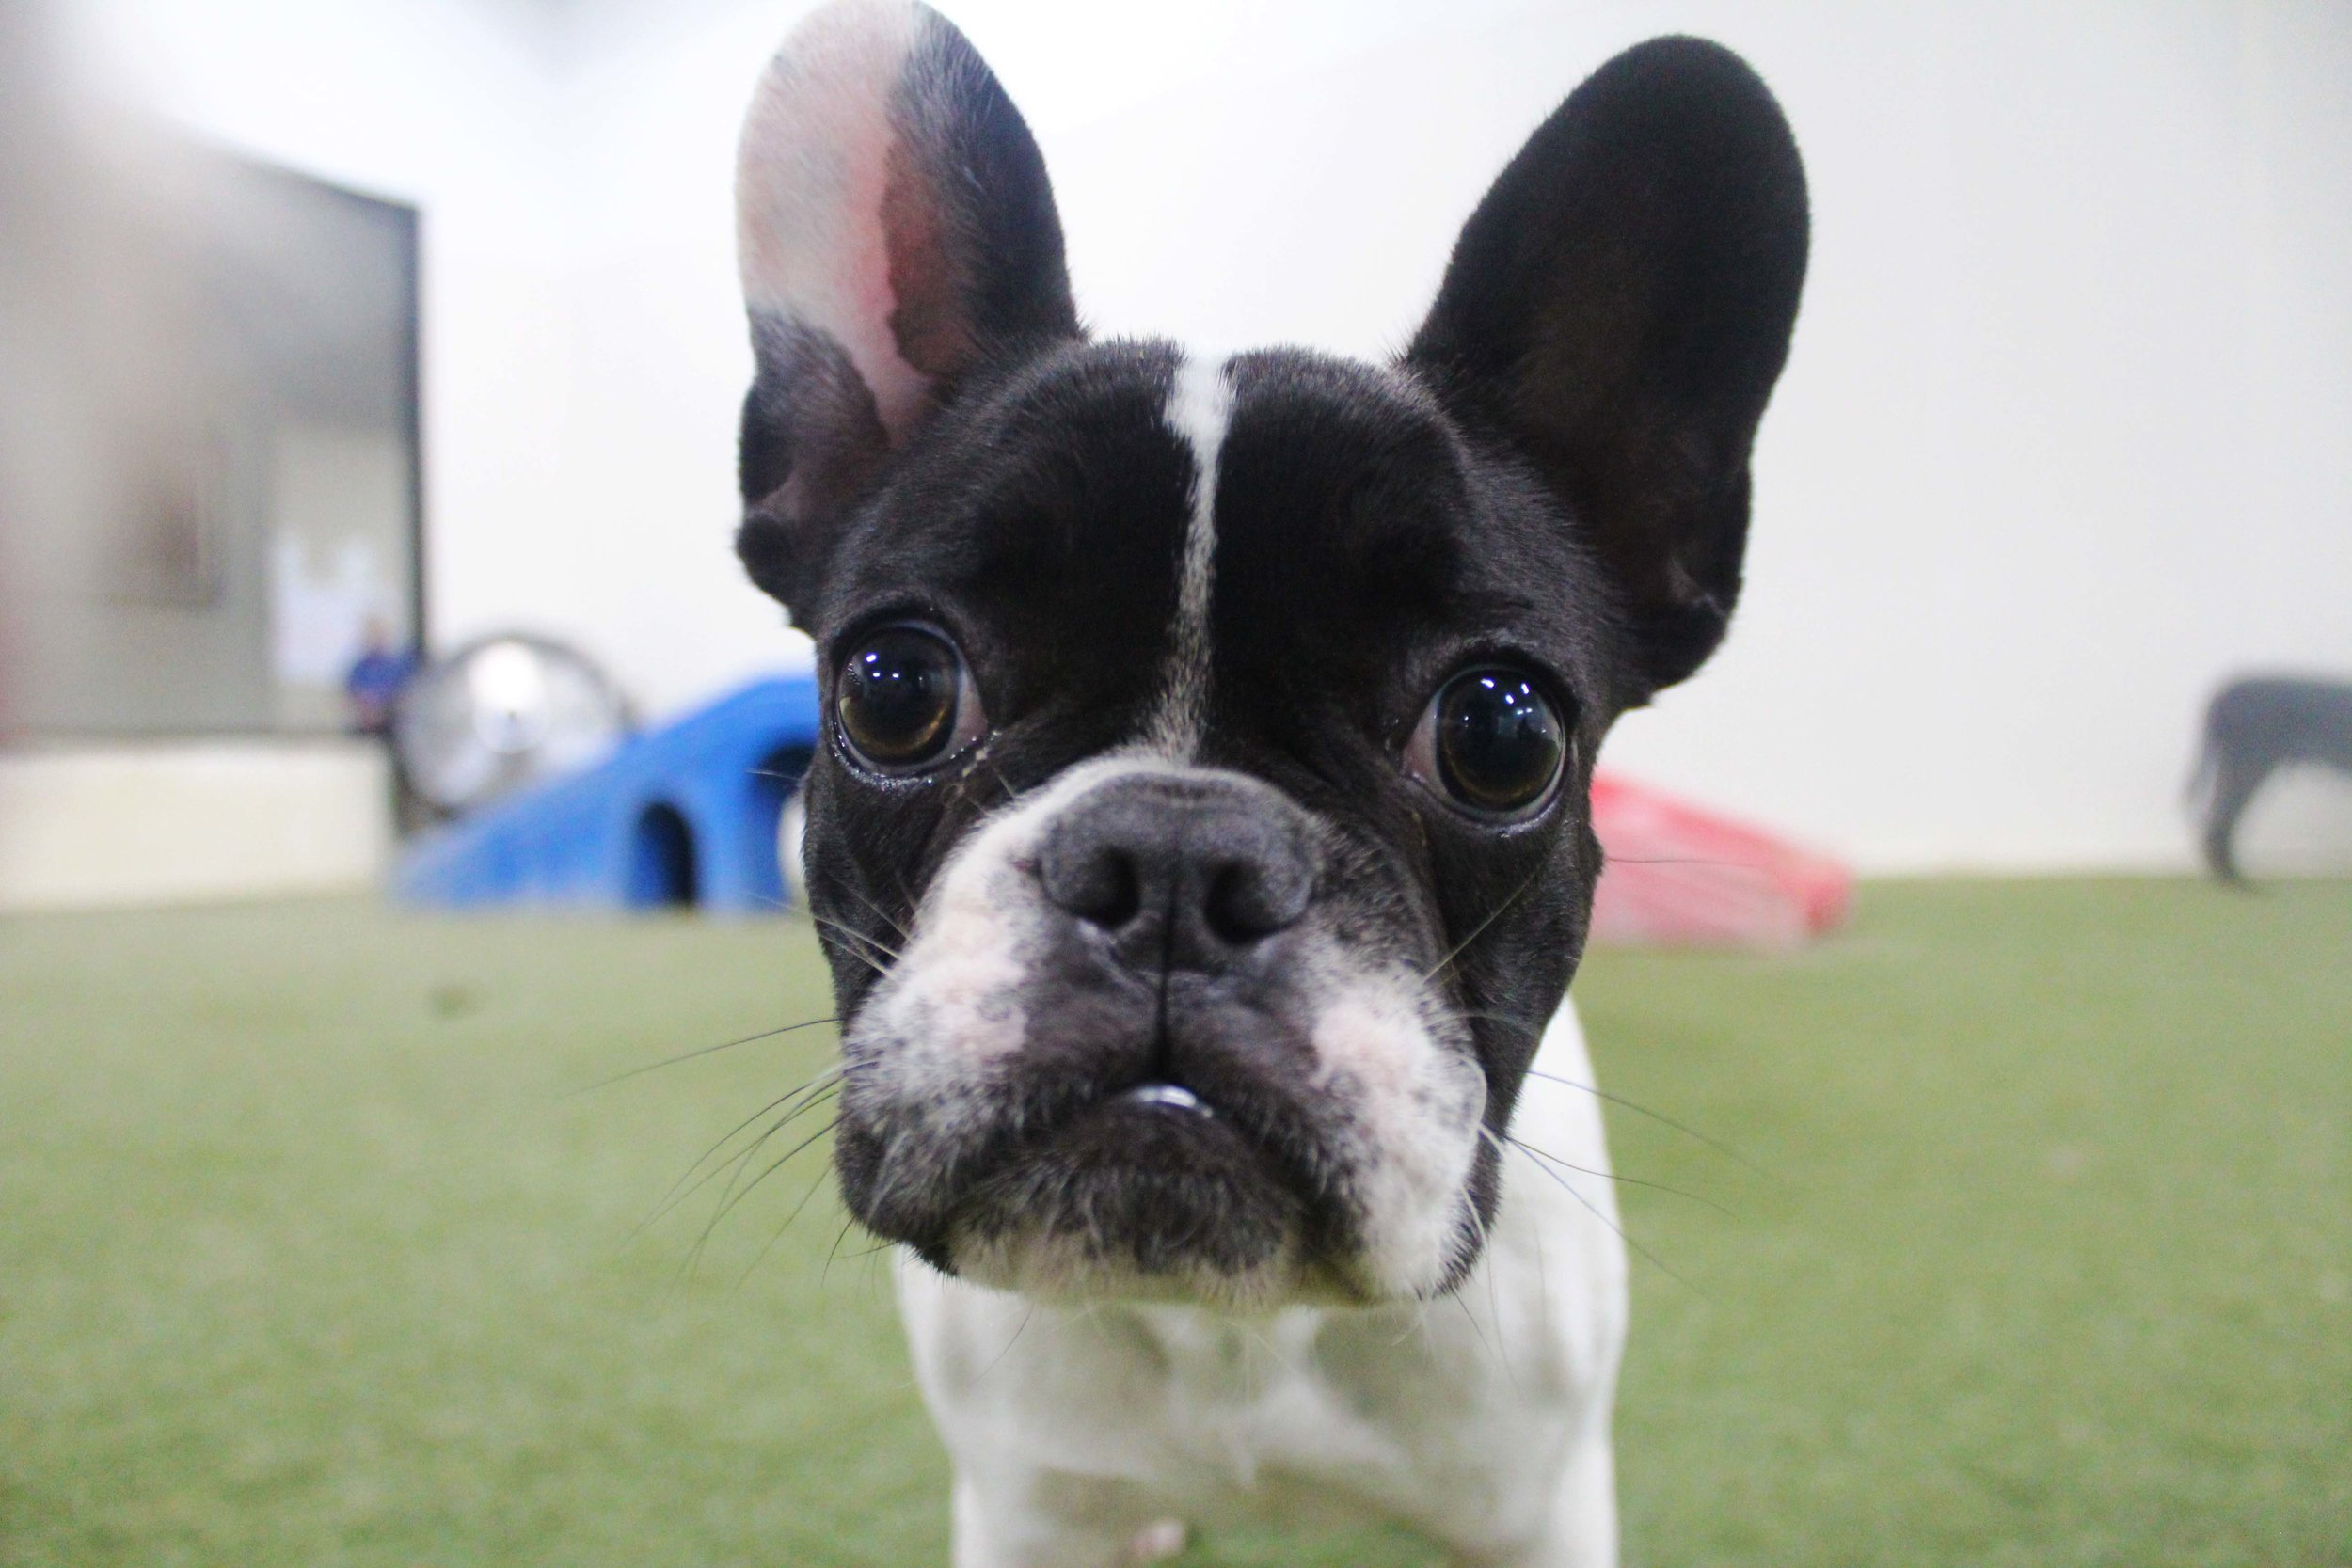 Coco may be small but she's definitely big in heart. A dog that gets along with almost everyone, human and dog alike, Coco is a favorite here at Pet Nation Lodge. Dog Daycare is so much better with Coco around!